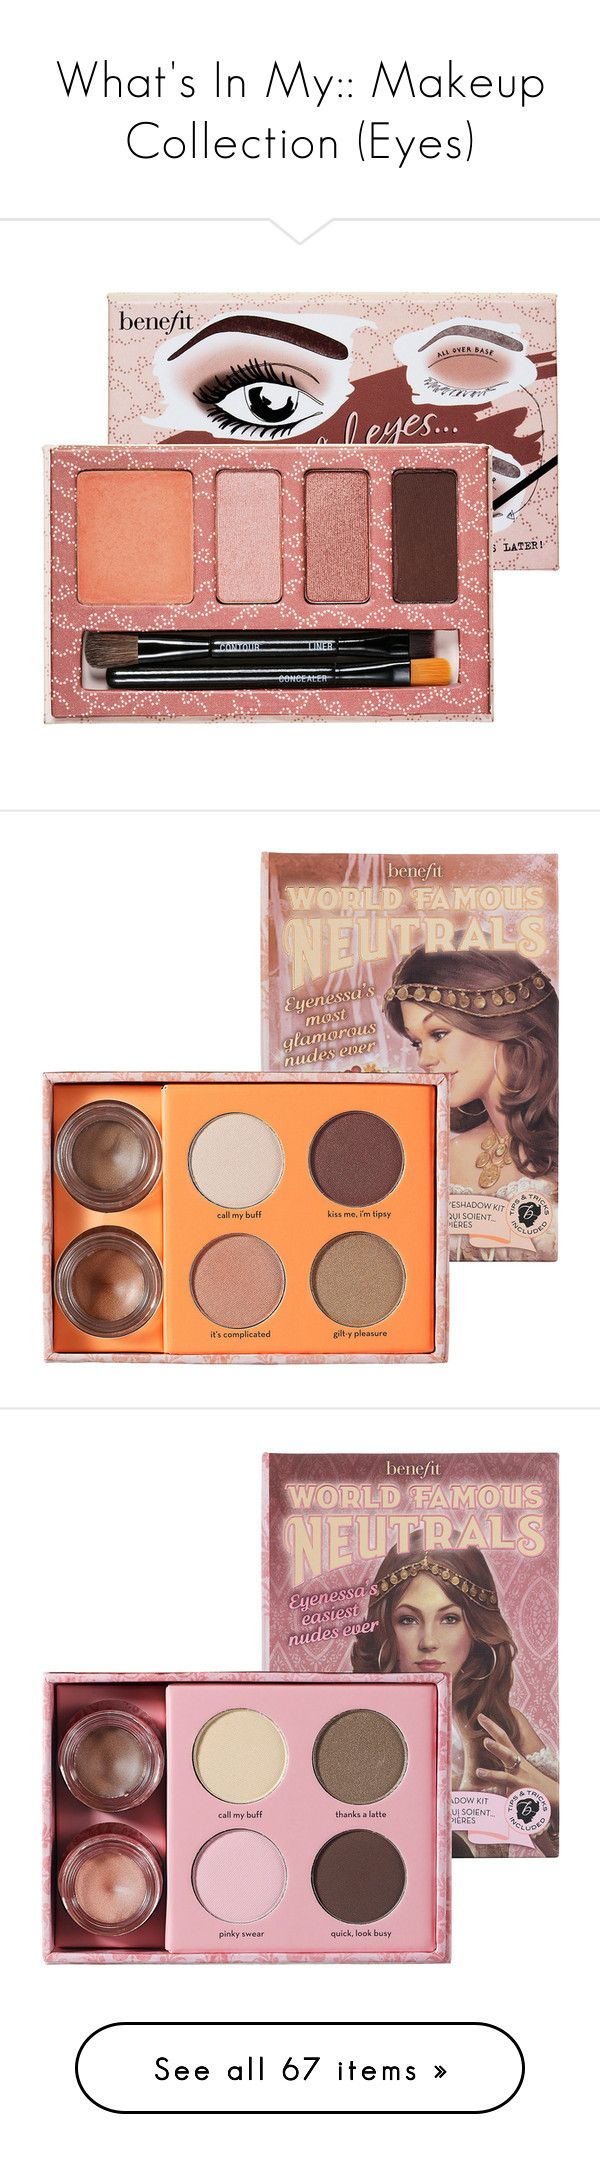 """""""What's In My:: Makeup Collection (Eyes)"""" by sbhackney ❤ liked on Polyvore featuring beauty products, makeup, eye makeup, eyeshadow, beauty, eye shadow, cosmetics, eyes, highlighting kit and benefit eyeshadow"""